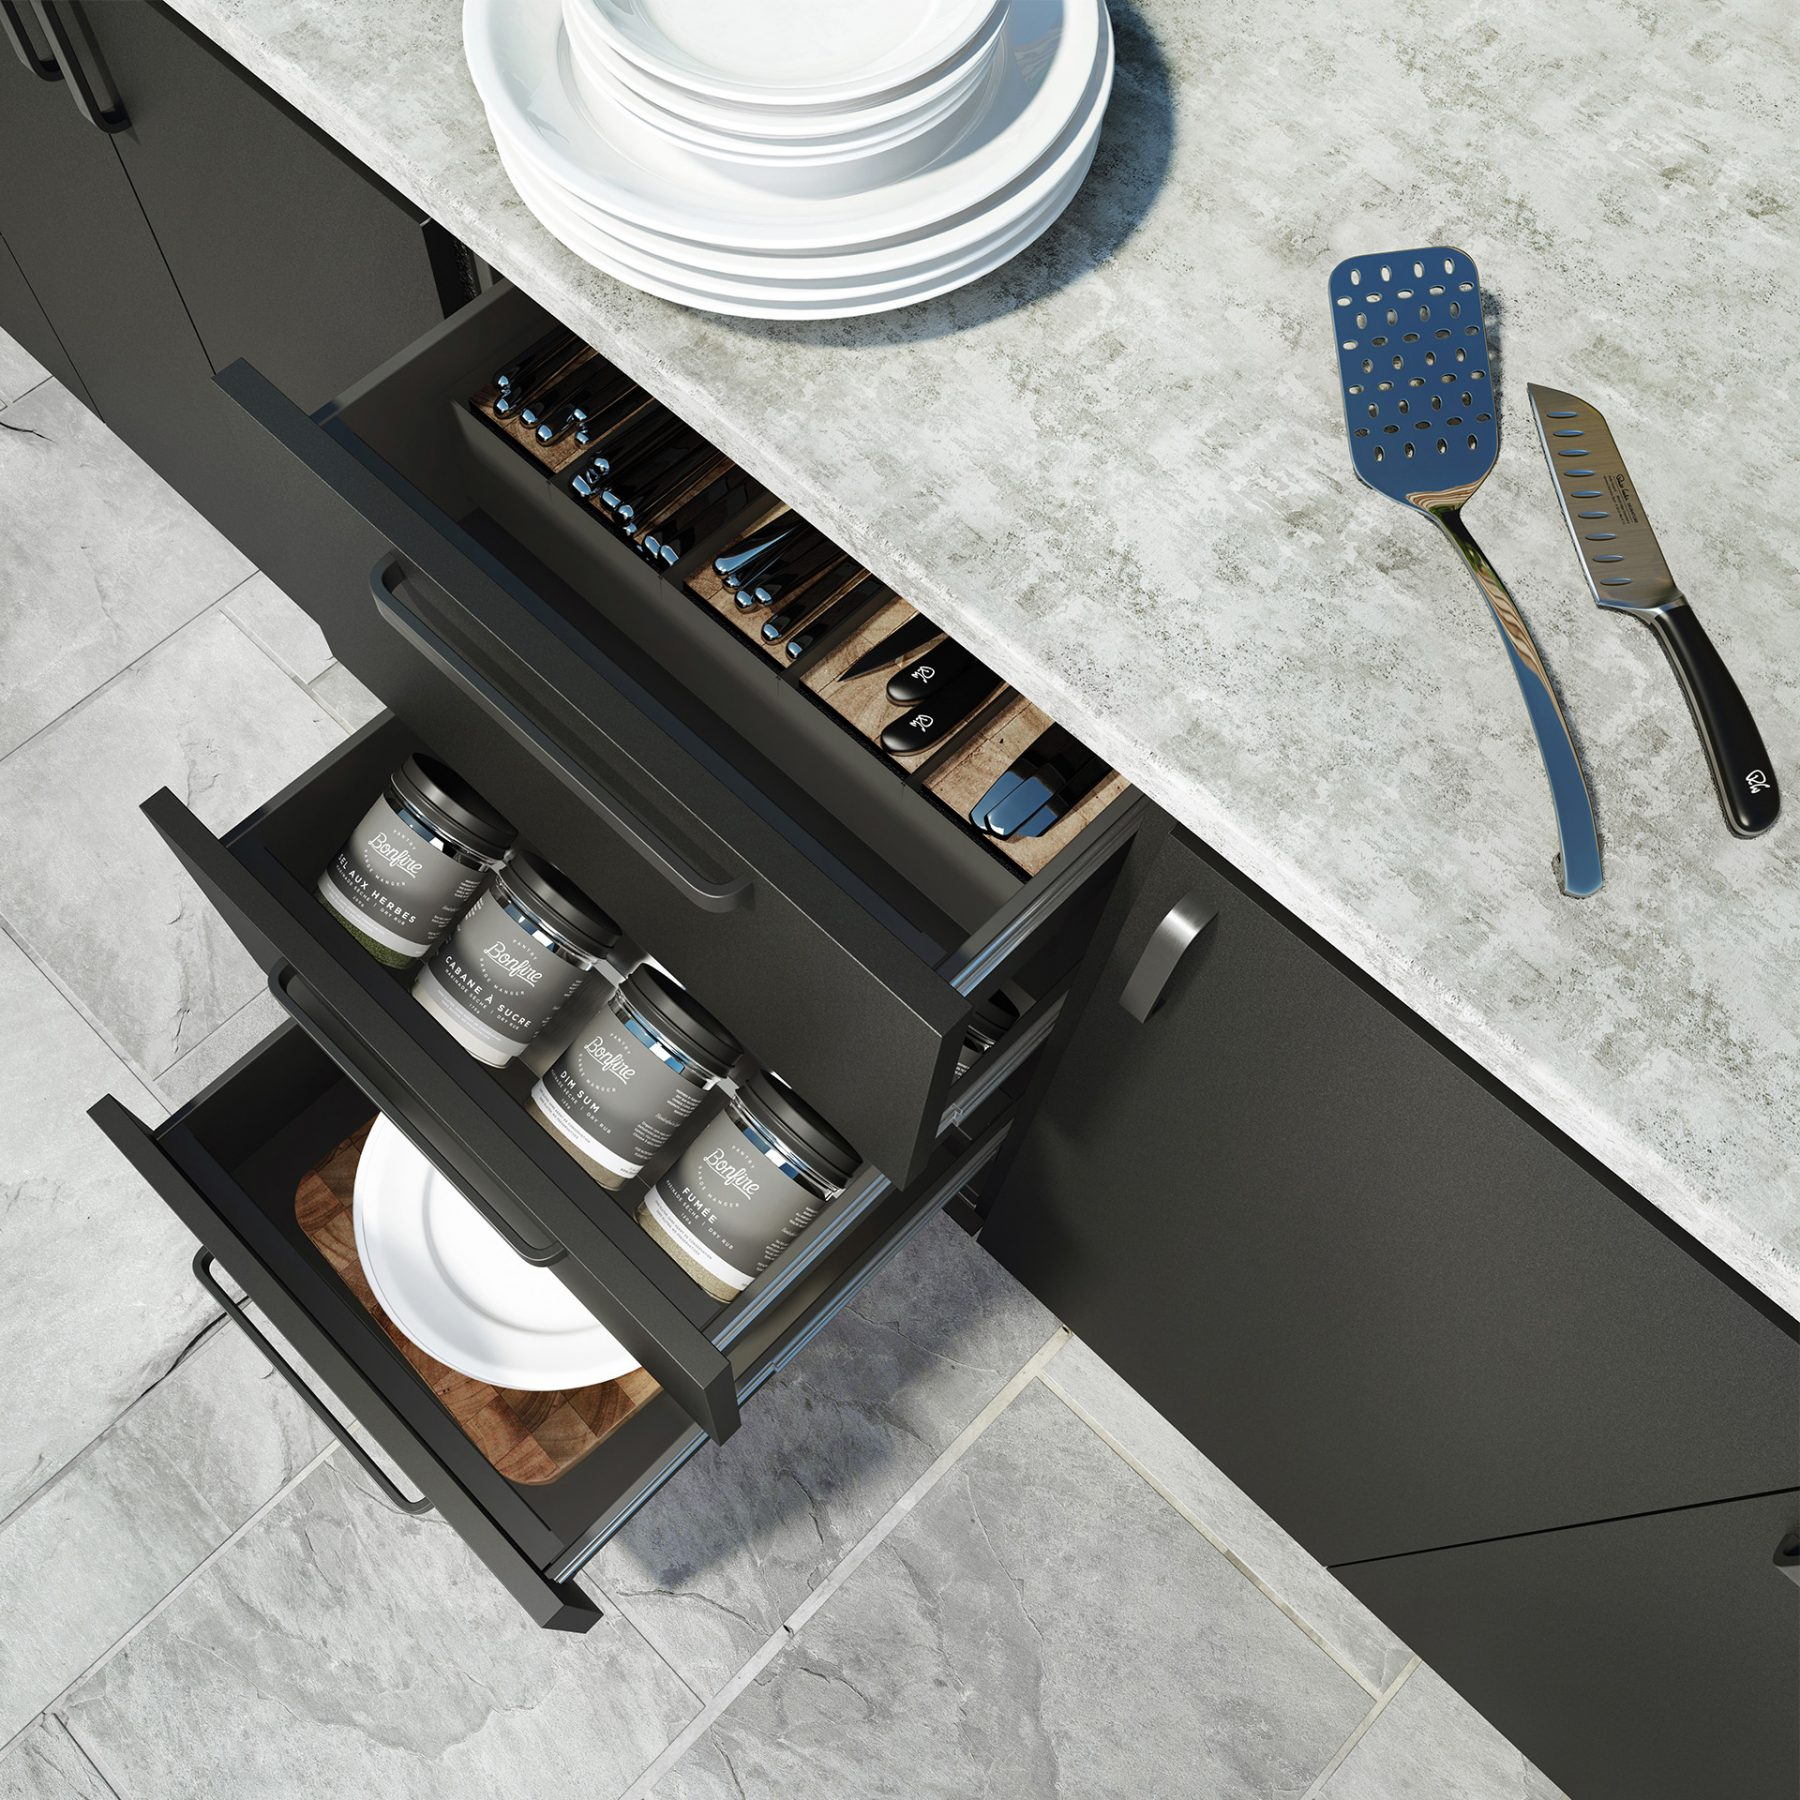 3d visualization outsourcing outdoor kitchen drawer